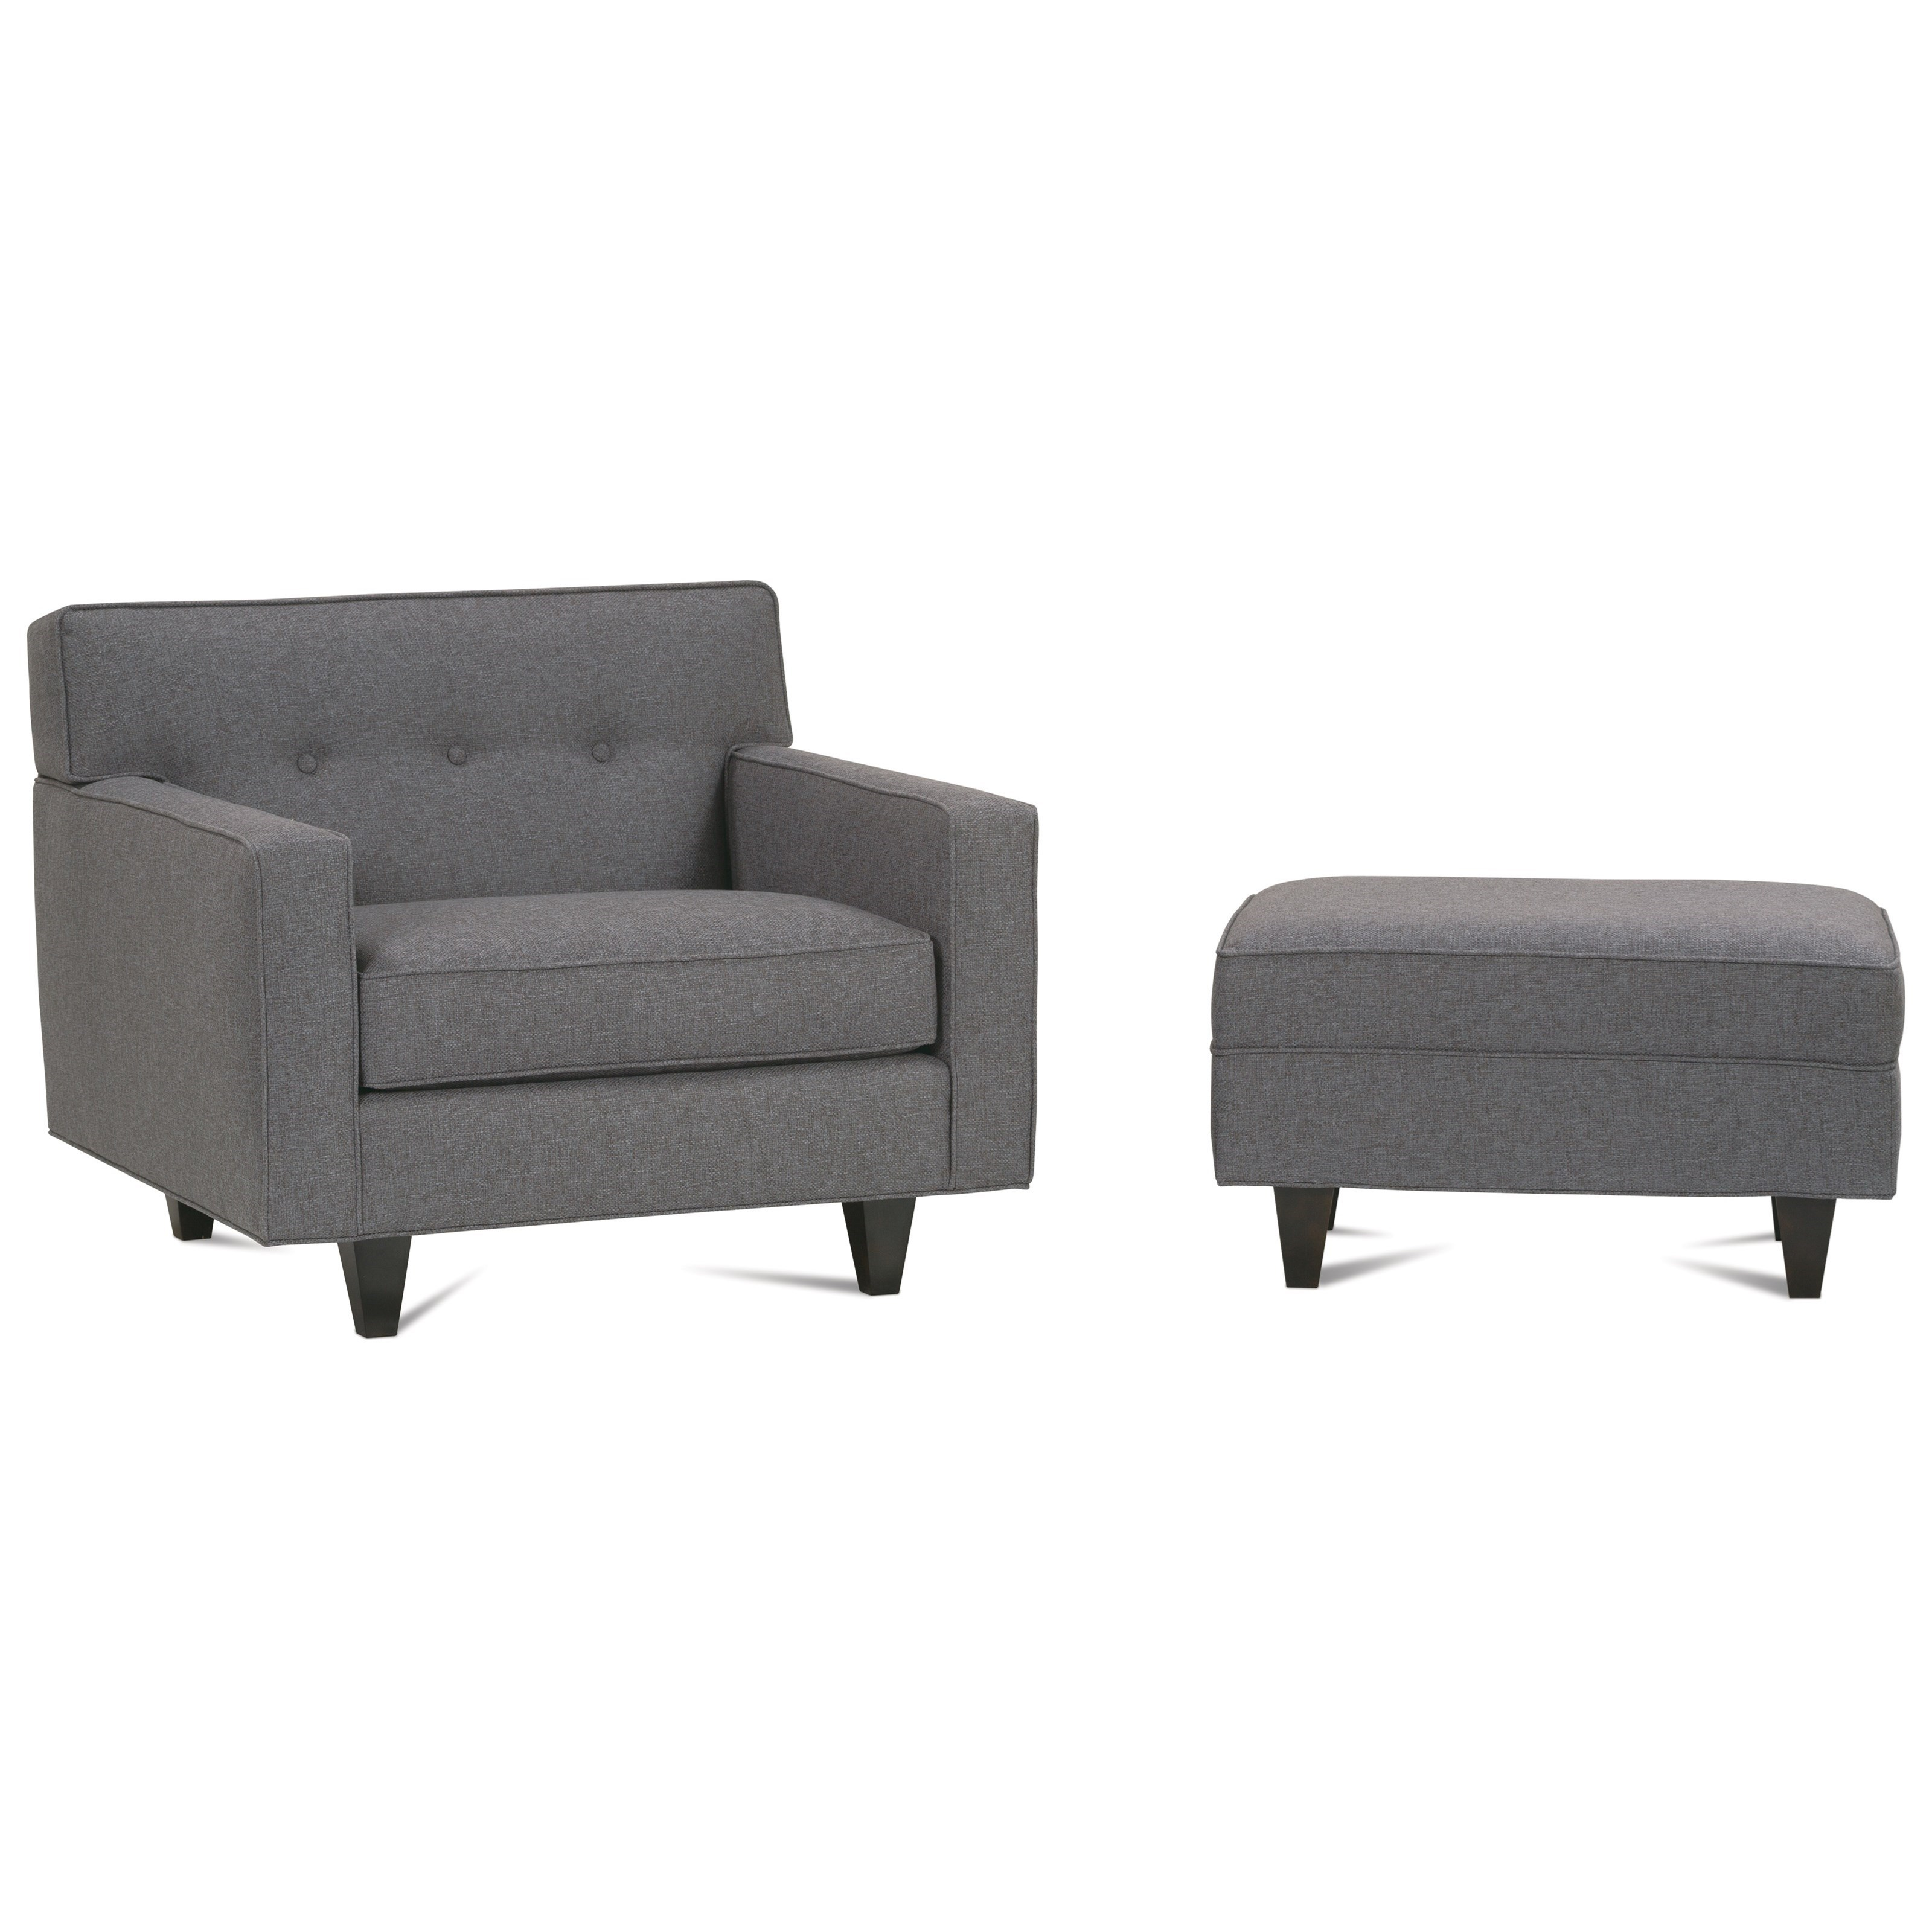 Dorset Upholstered Chair & Ottoman by Rowe at Baer's Furniture